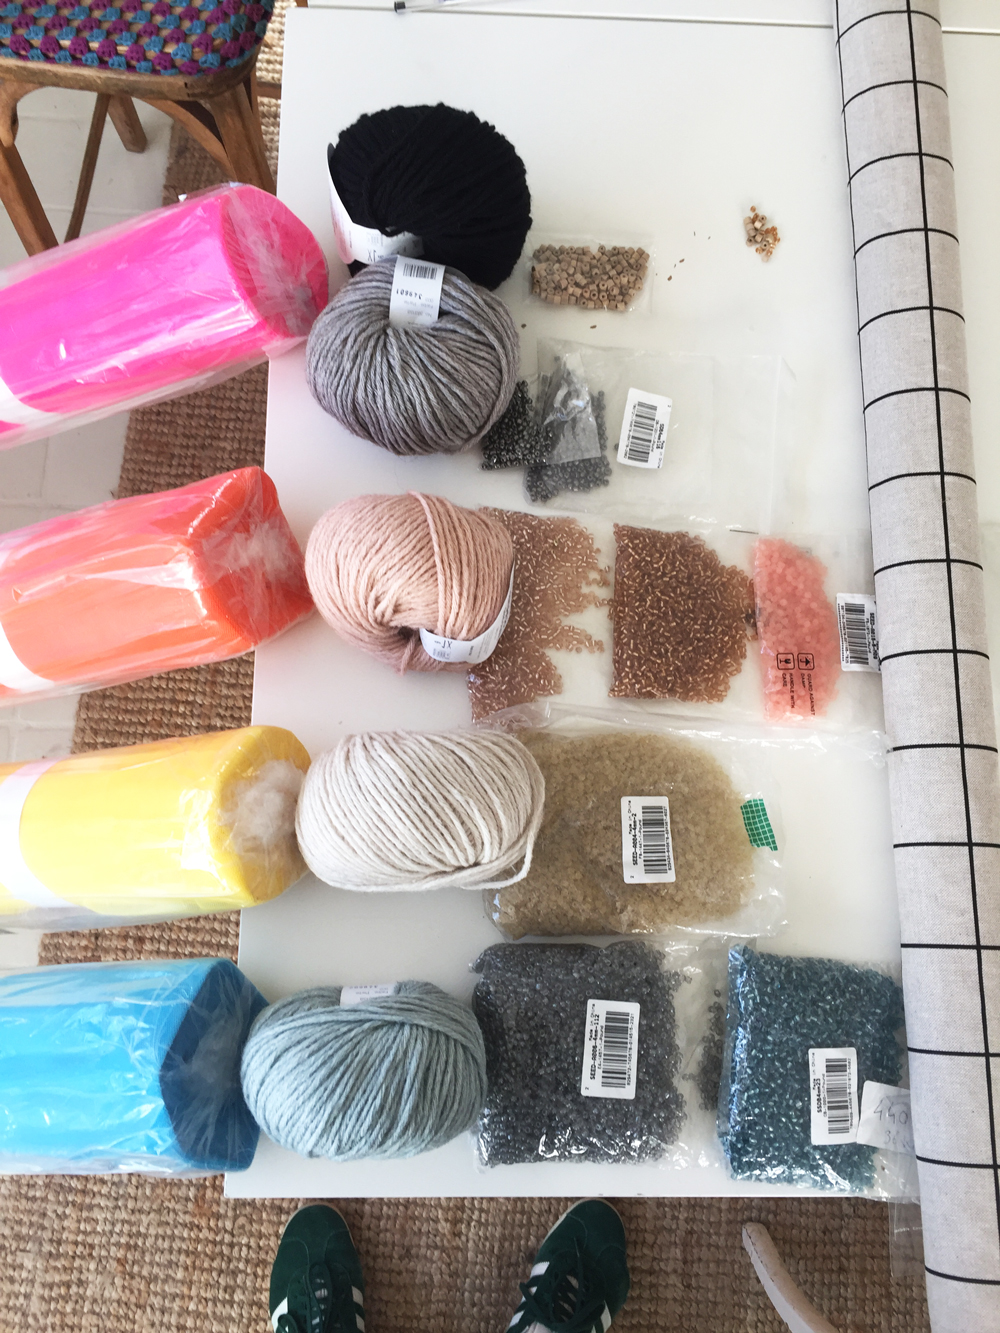 atelier-chouette-kit-creation-gamme-1000